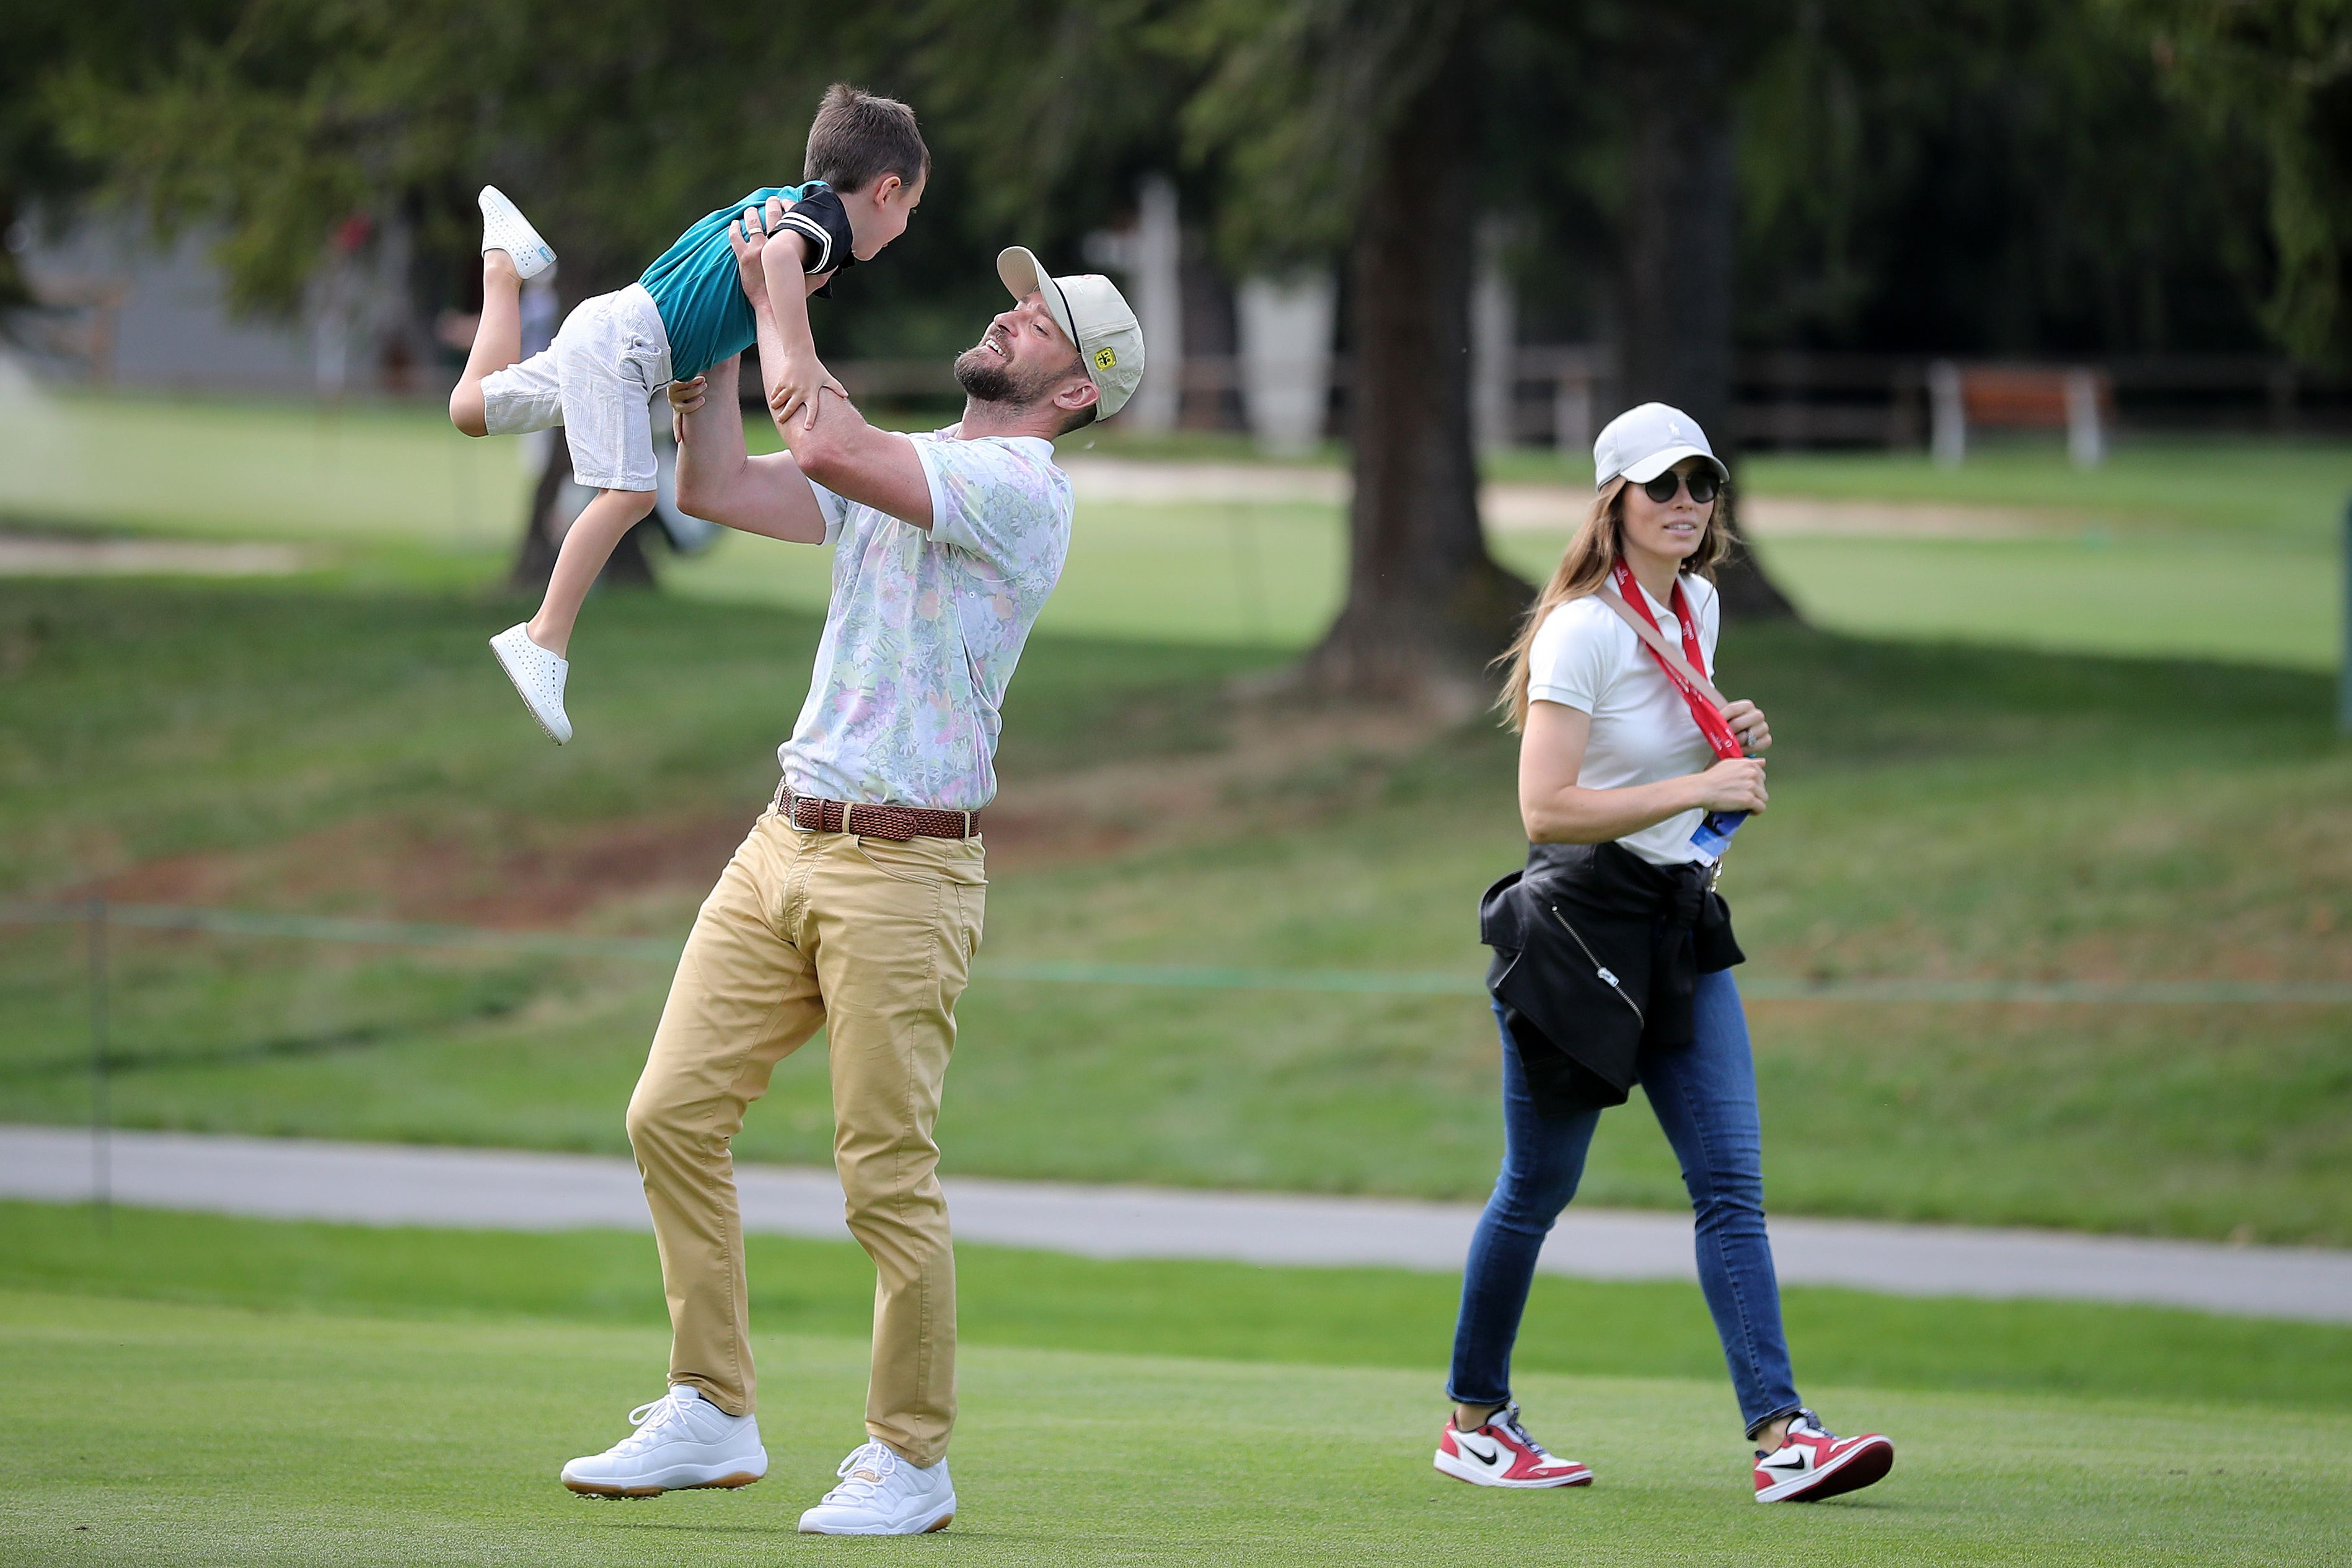 Justin Timberlake, Jessica Biel, and their son playing outside